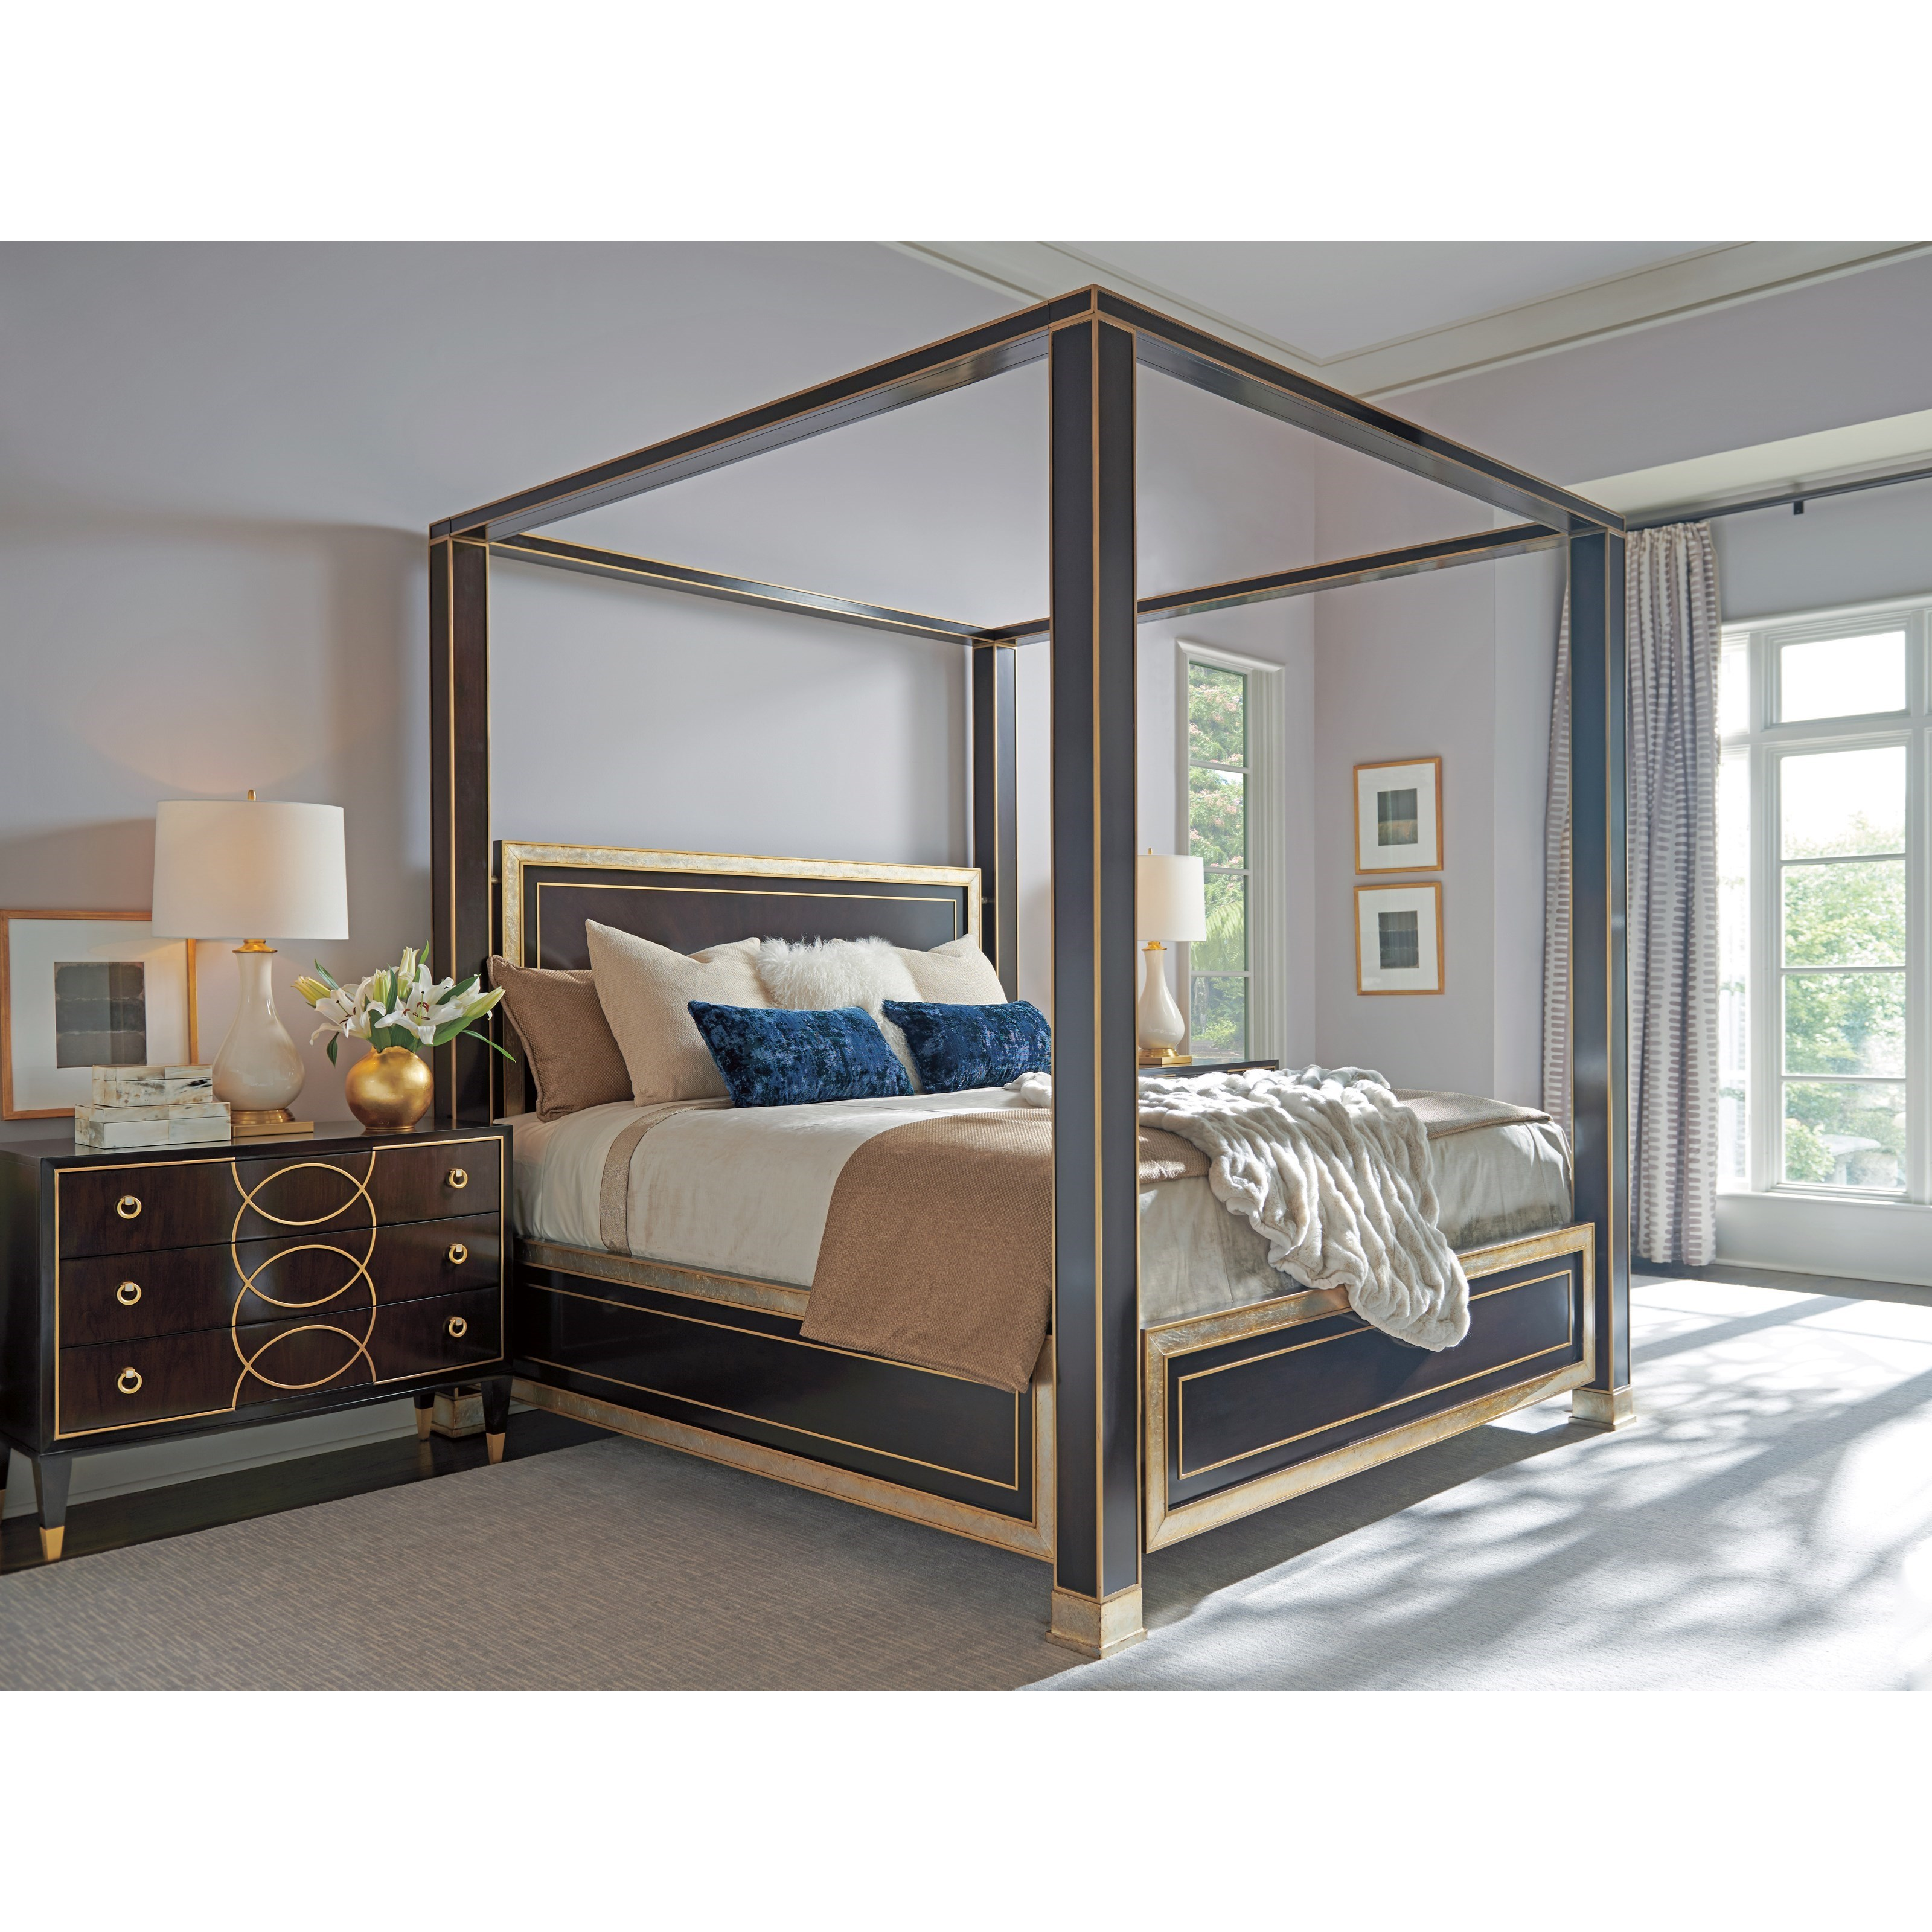 Carlyle King Bedroom Group by Lexington at Baer's Furniture